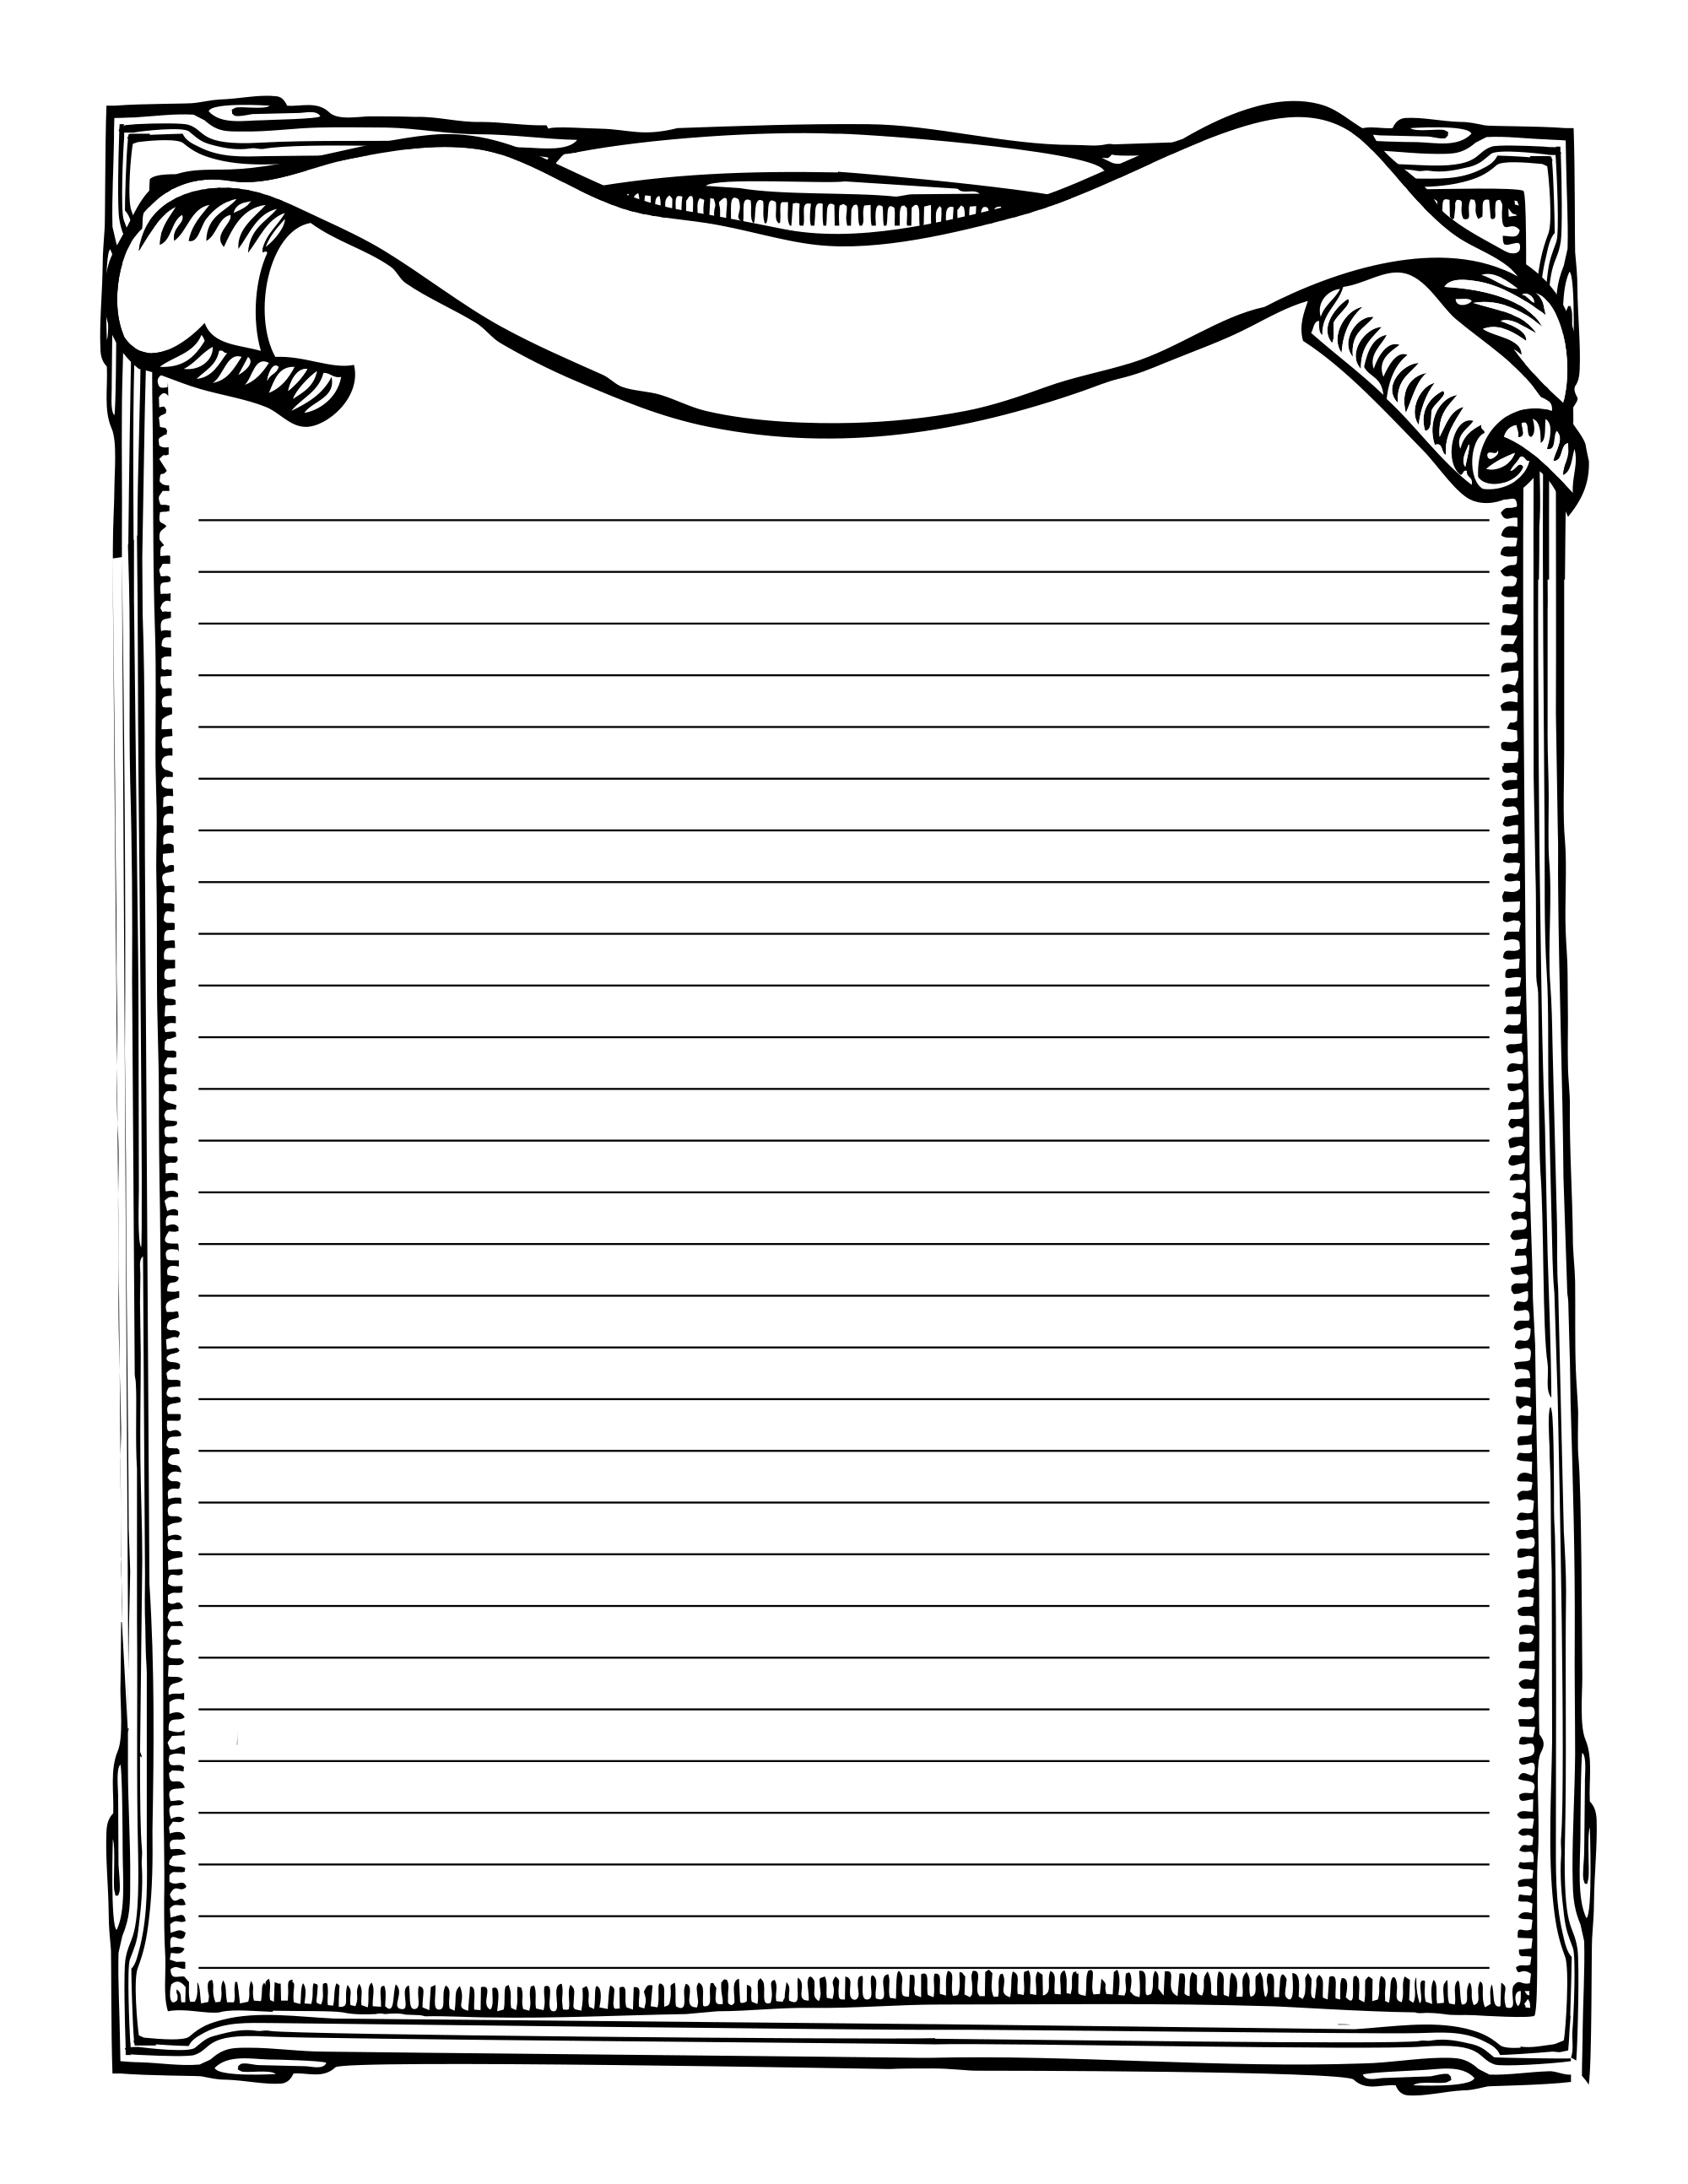 Printable Stationary Page Book Of Shadows Free Download   Bos Blank - Free Printable Golf Stationary